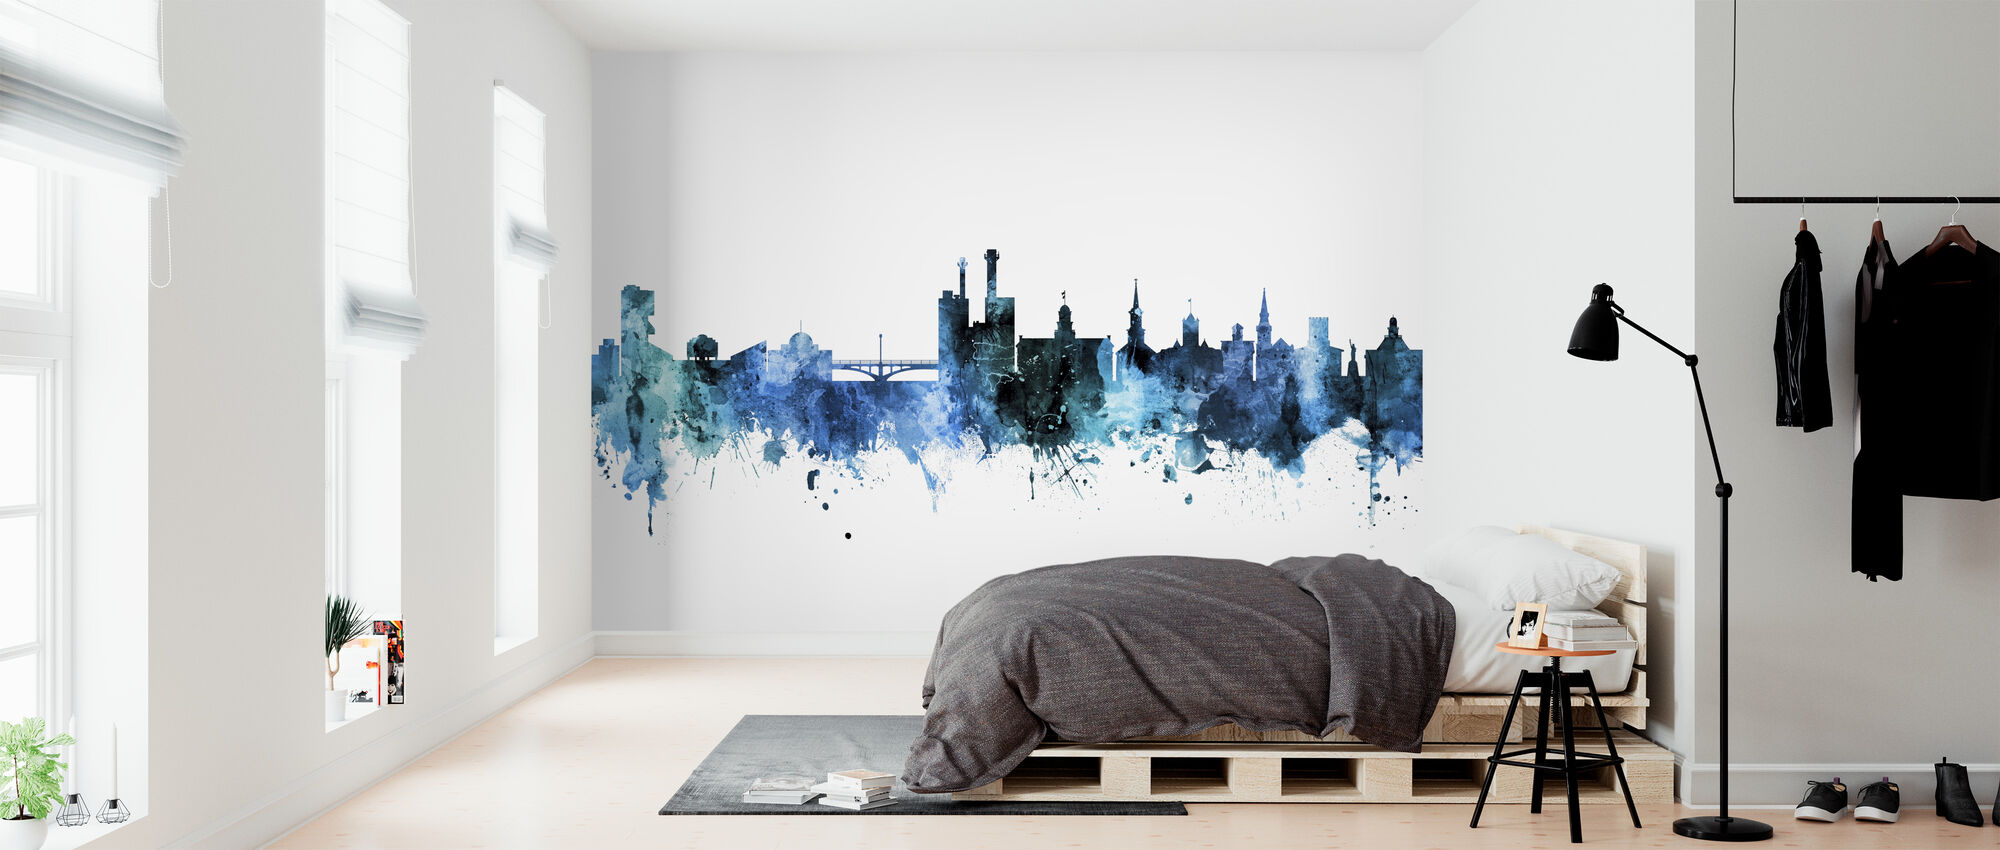 Iowa City Iowa Skyline - Wallpaper - Bedroom